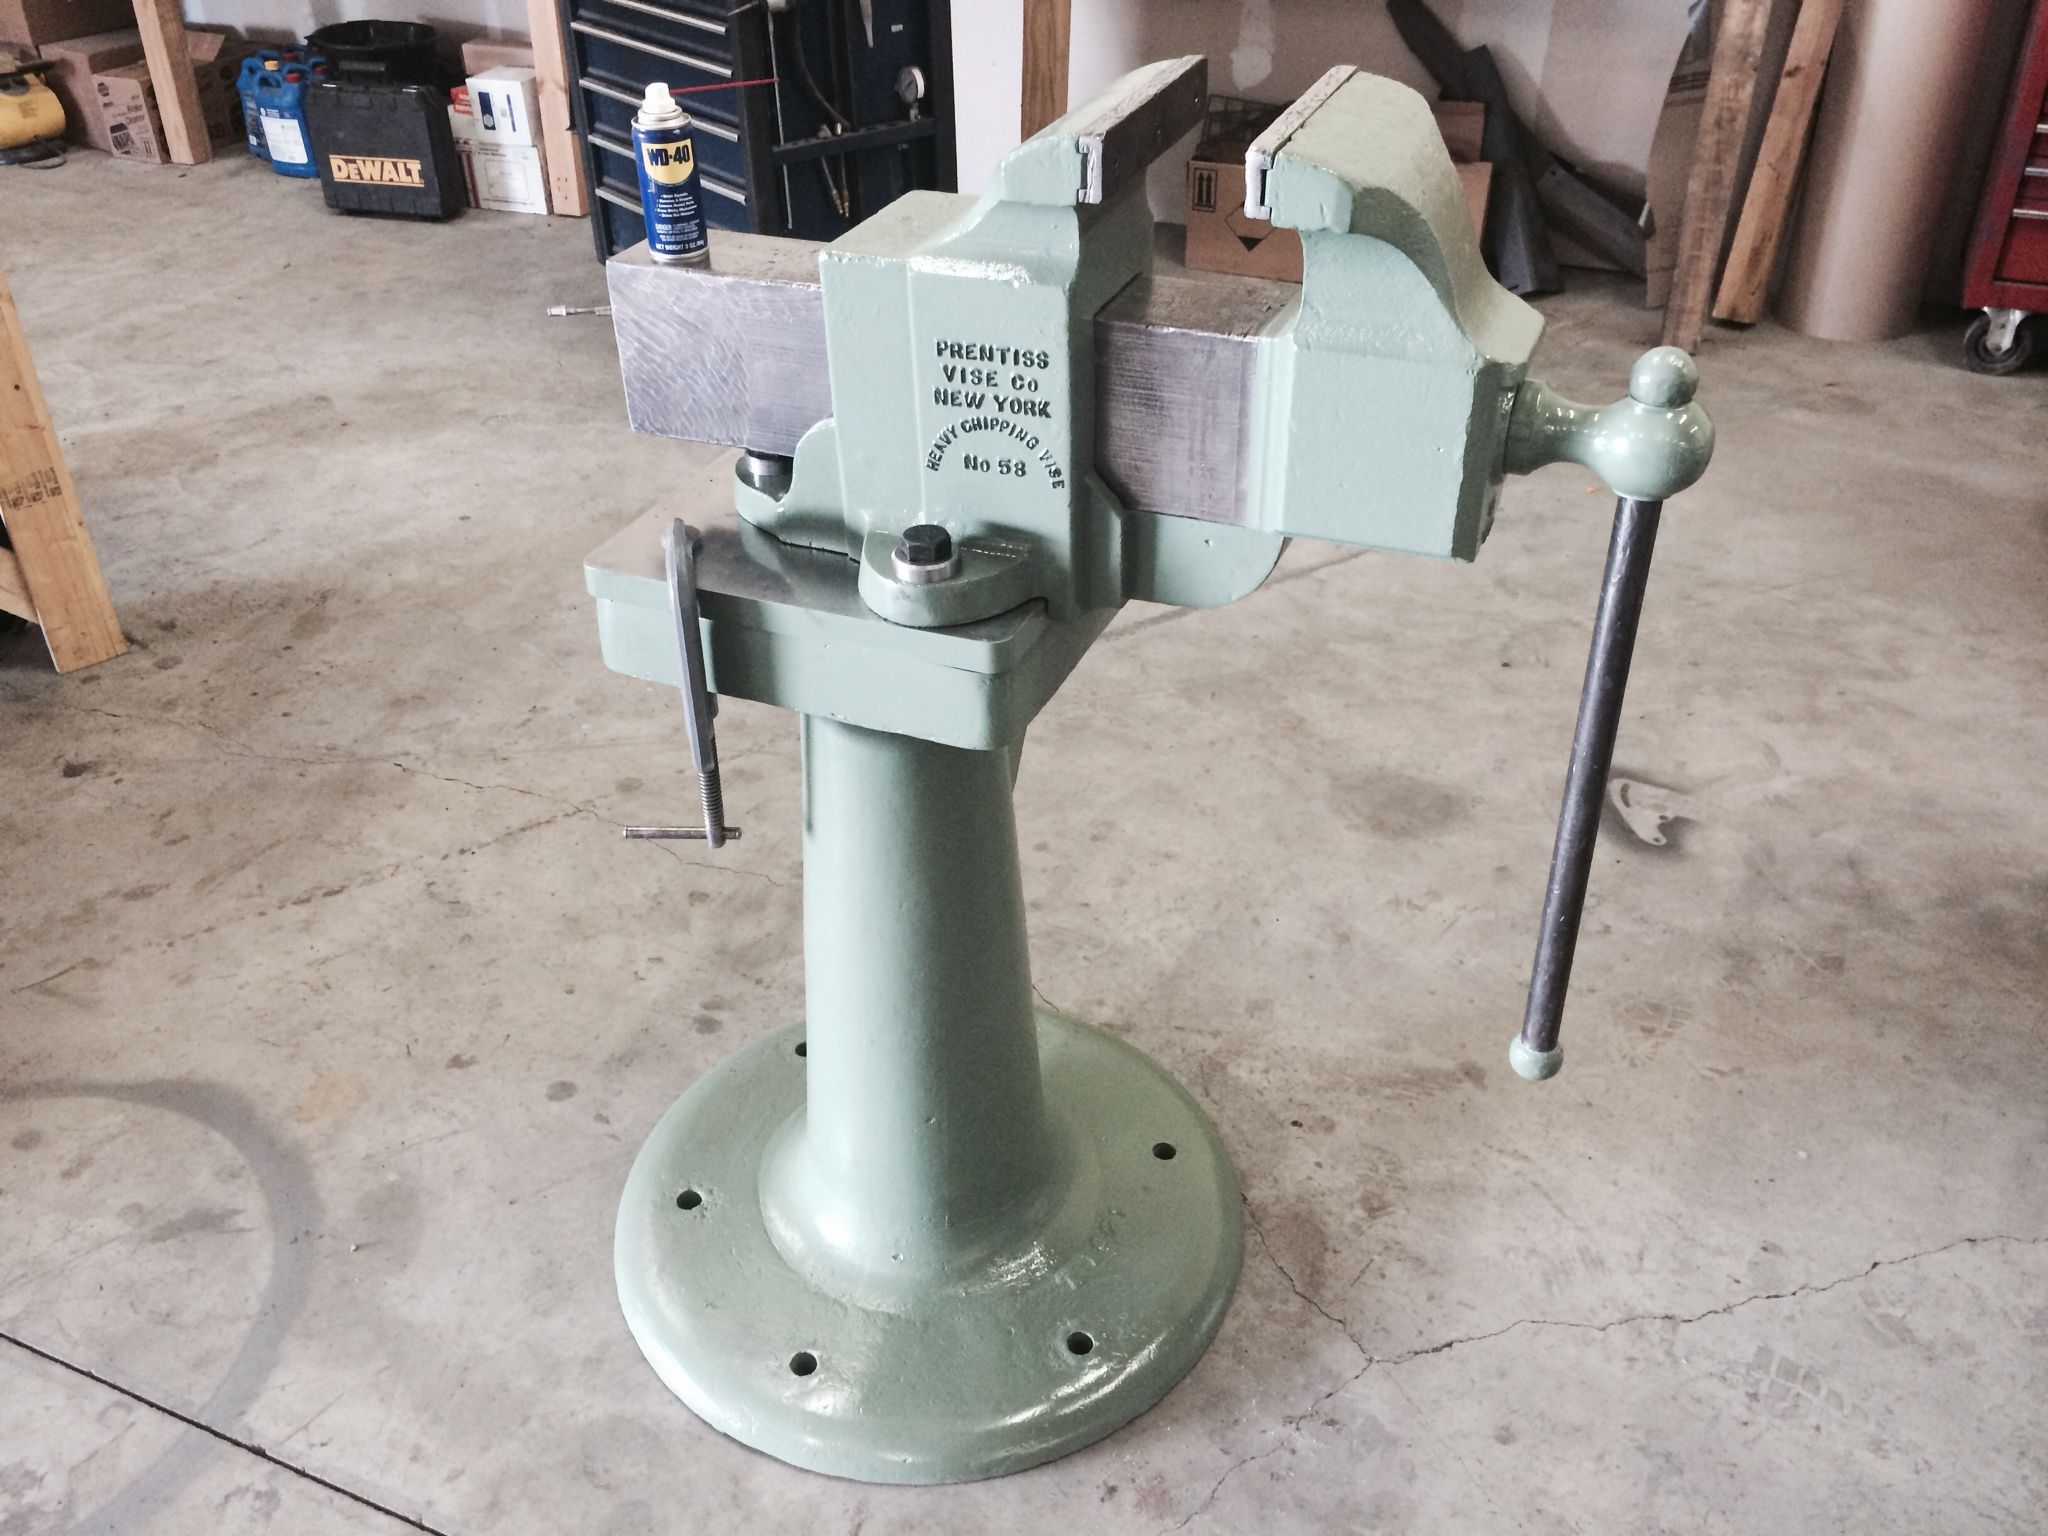 This Vise Came Out Of The Rail Yard In Laramie Wy And The Vise Stand Came From The Albuquerque Rail Yard Vise Ha Metal Working Tools Homemade Tools Bench Vise